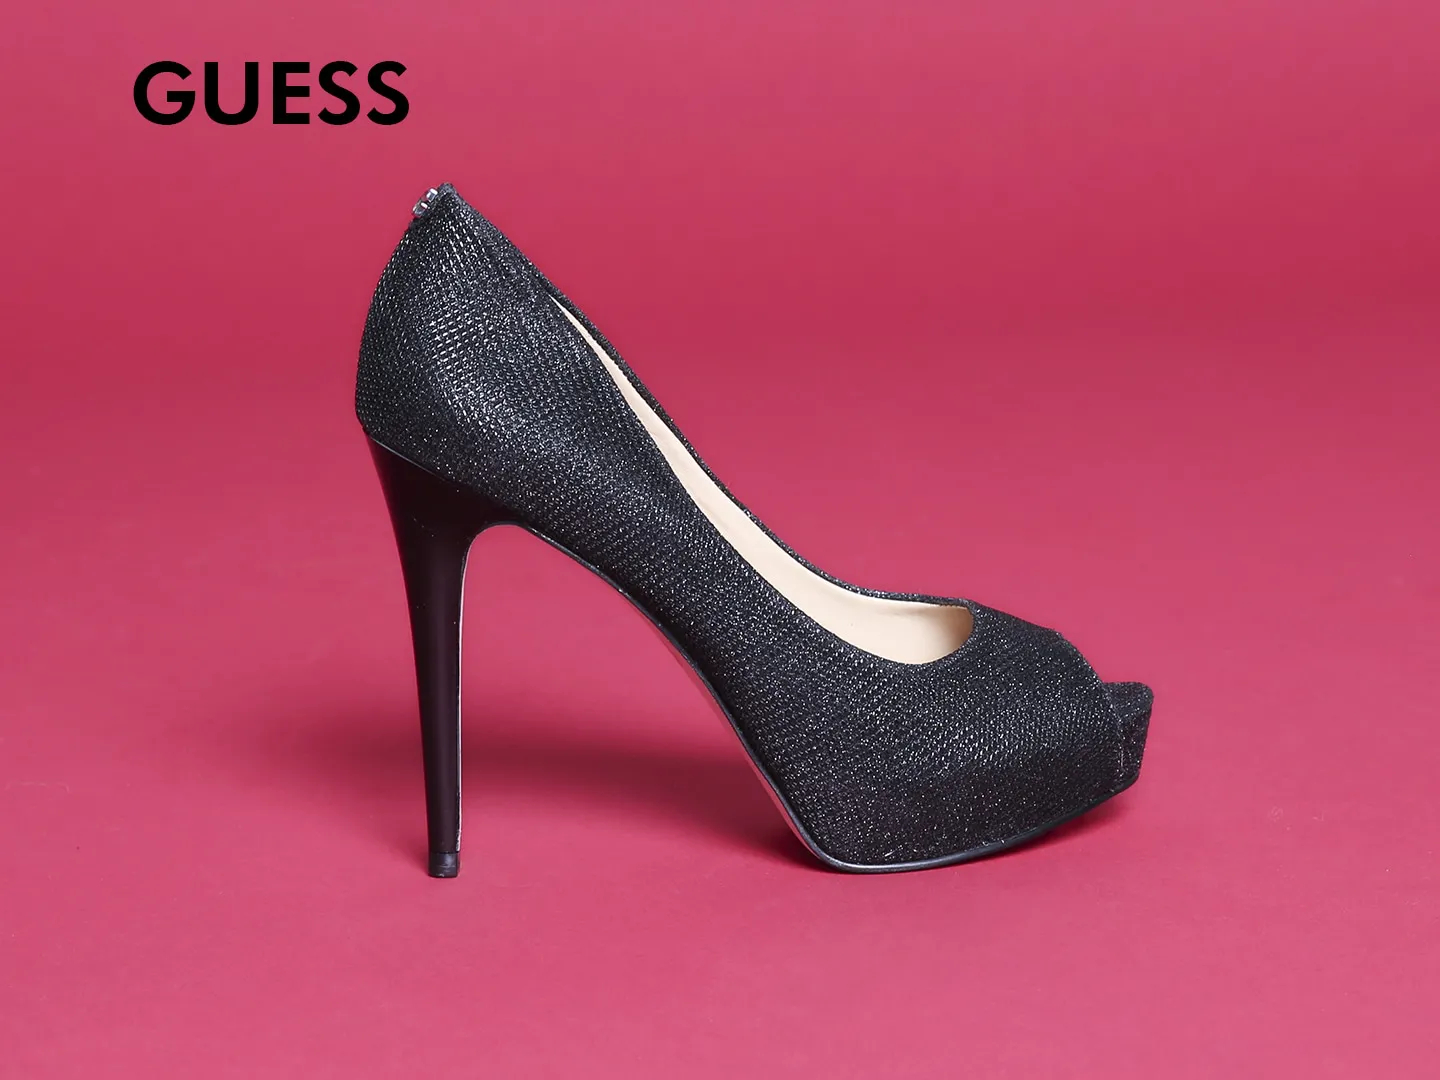 Ventis Guess Acquista Guess Su Calzature eWIbD2EHY9